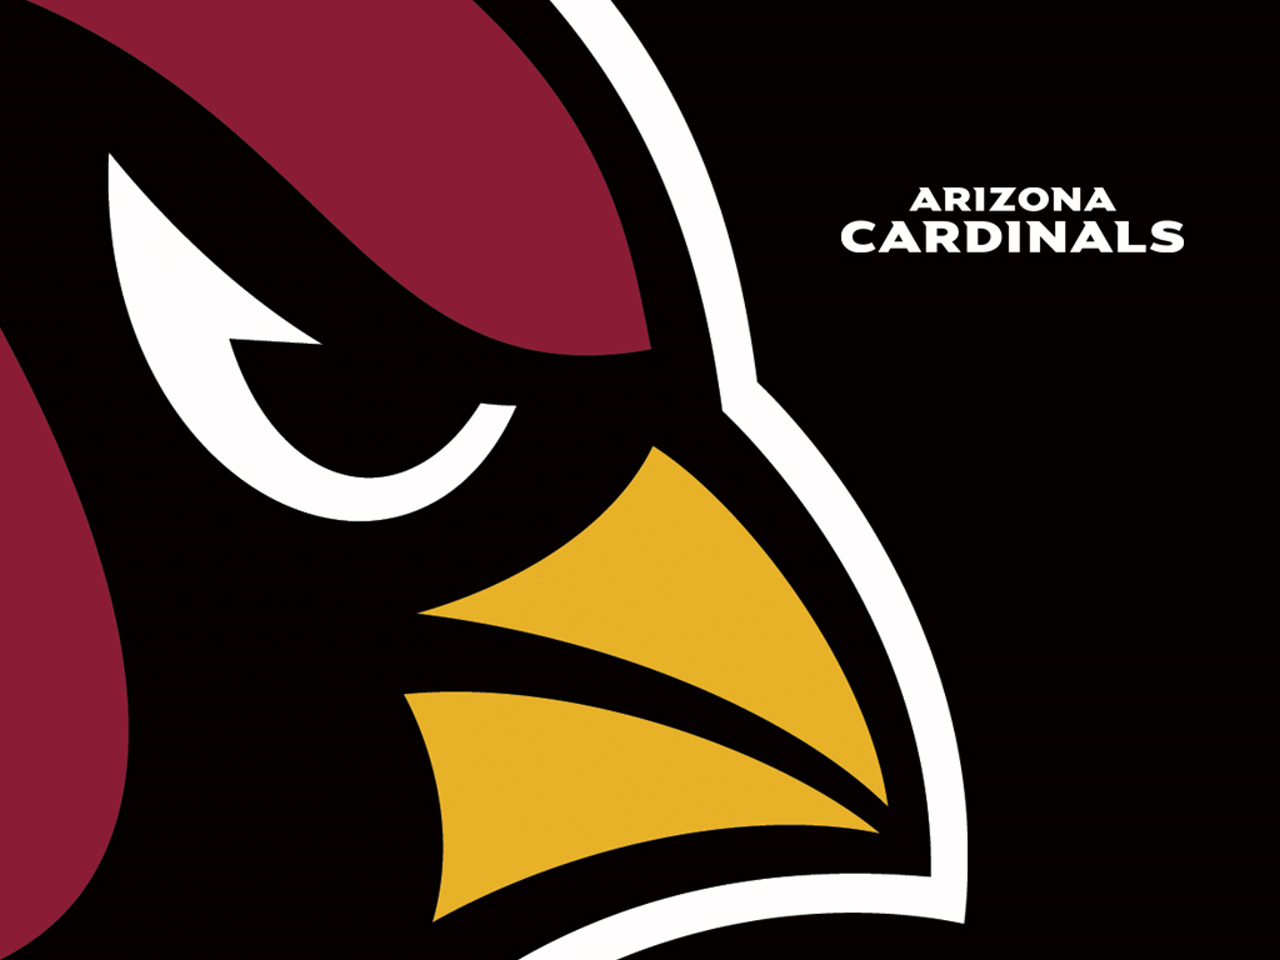 NFL images Arizona Cardinals HD wallpaper and background photos